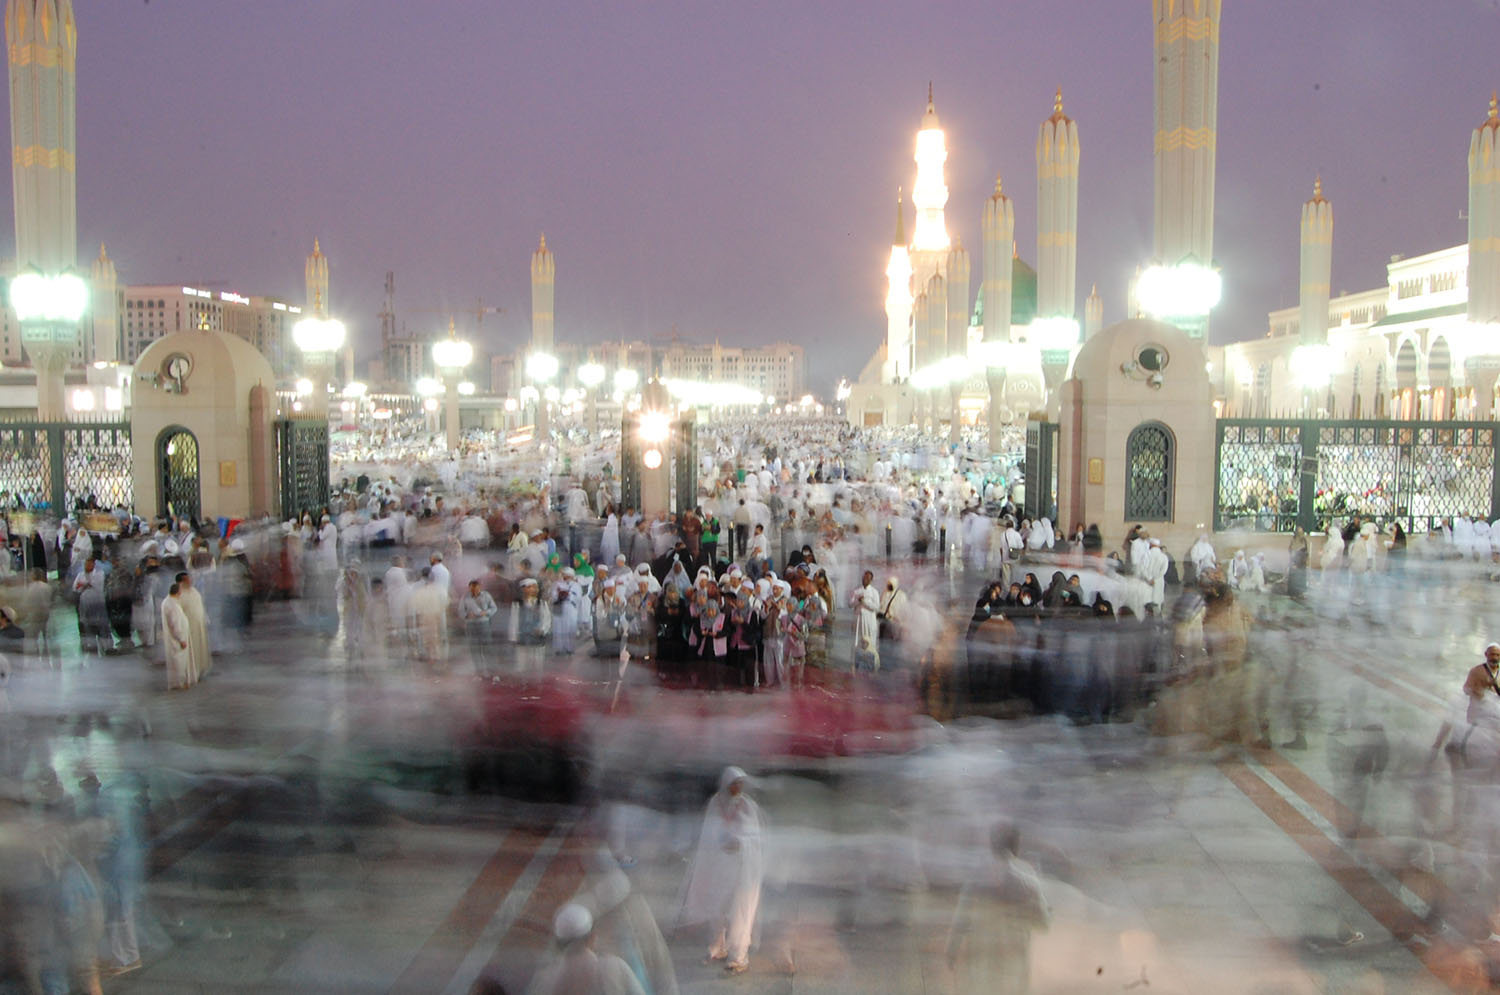 A frenzy of activity at the Masjid al-Nabi, as more pilgrims arrive